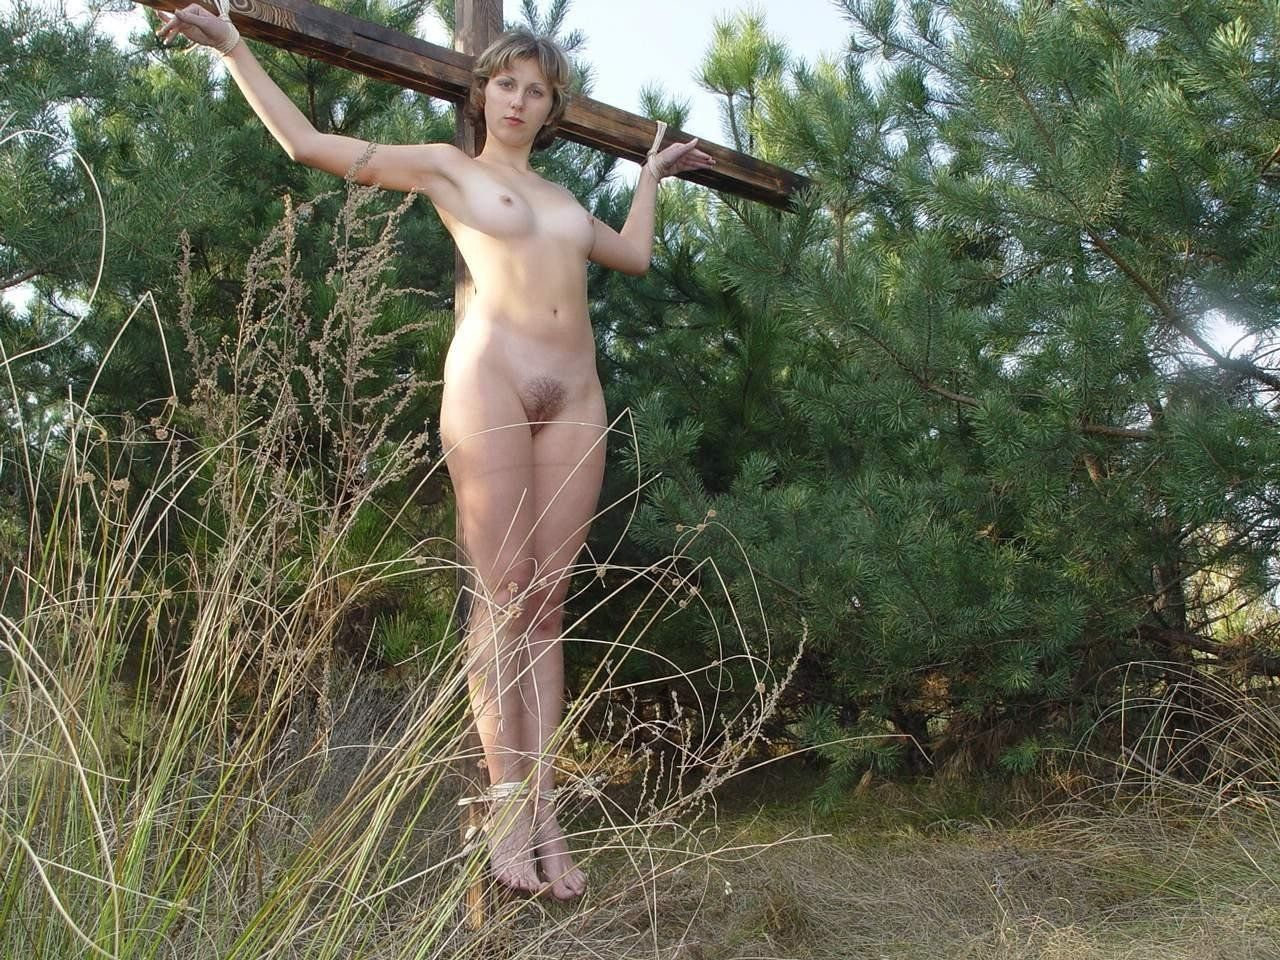 Women crucified nude extreme NEW porn website images. Comments: 1